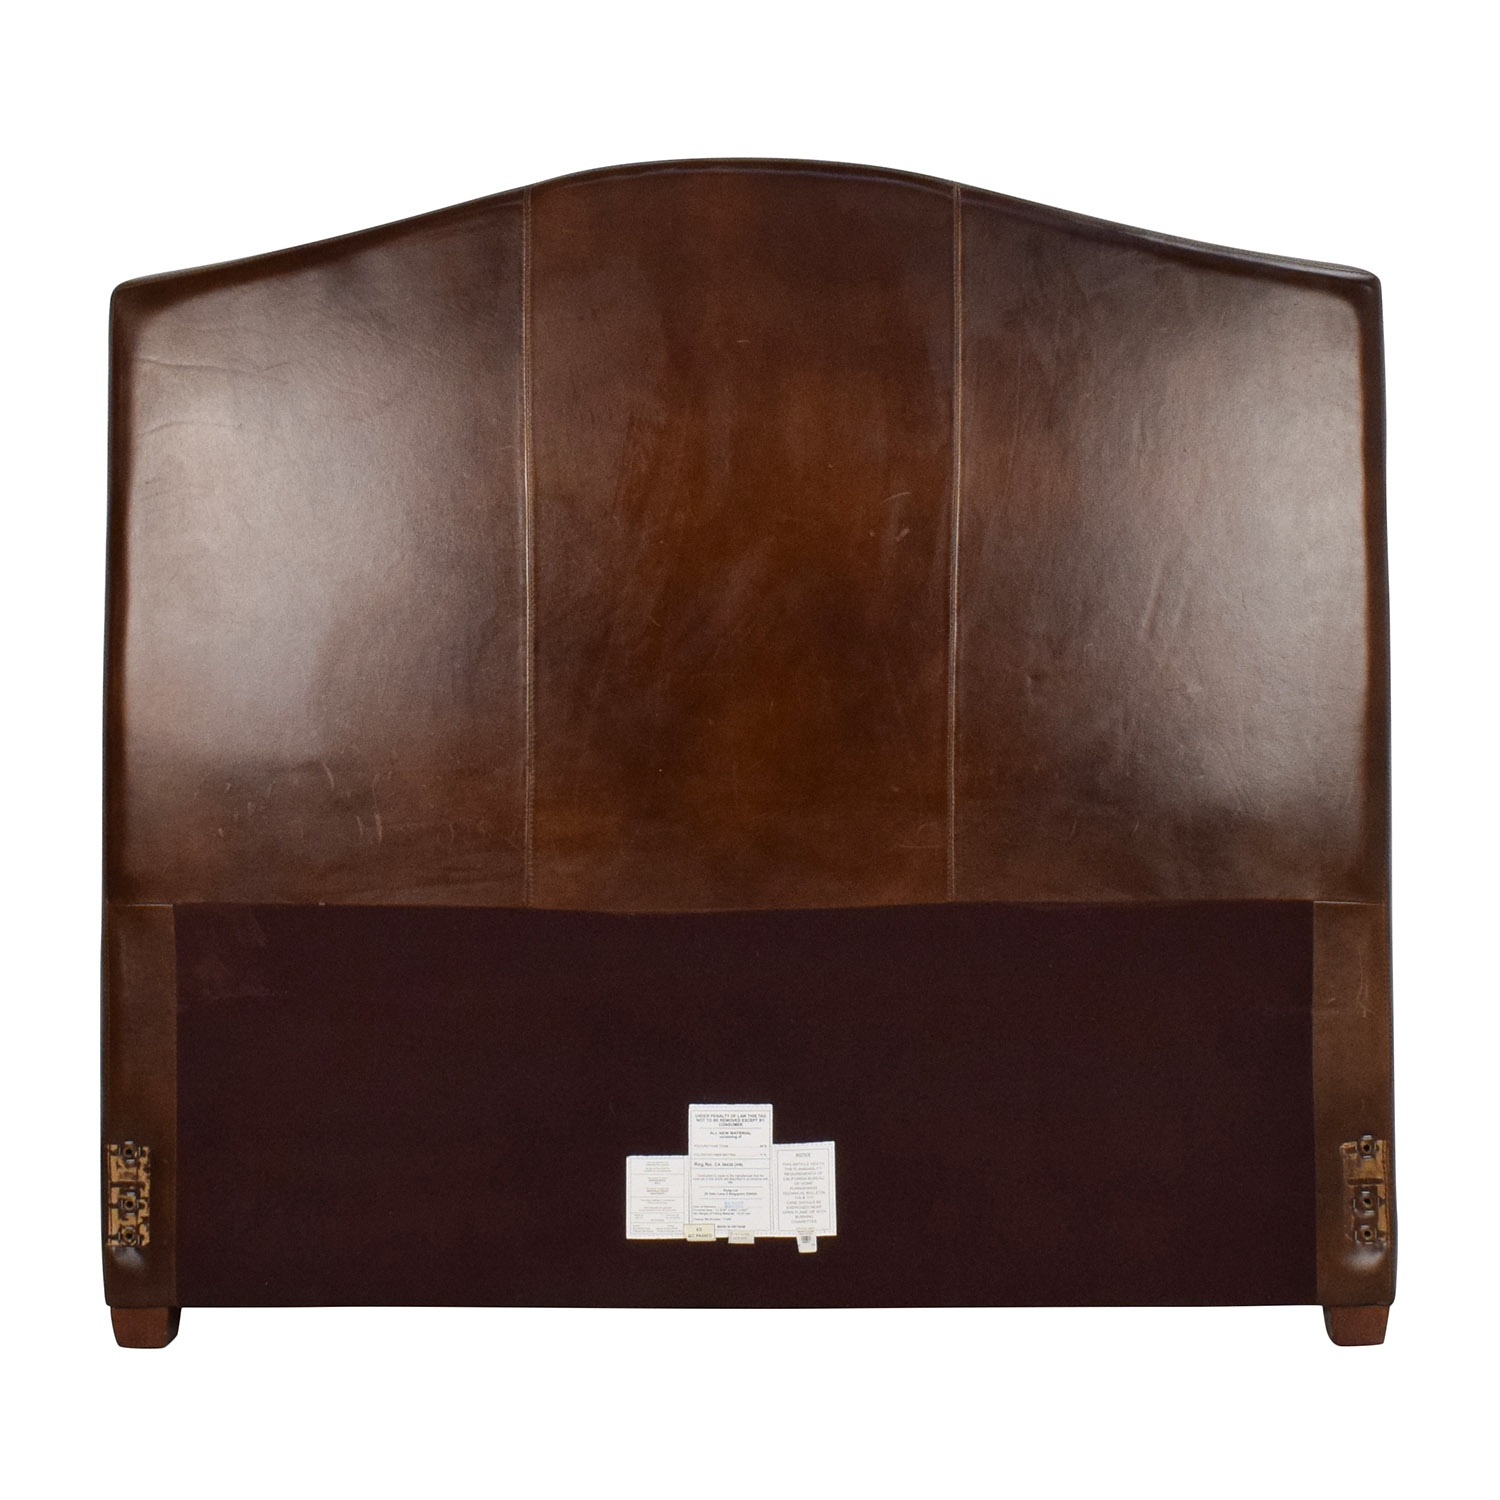 Alex Alin Designs Alexander Queen Leather Headboard / Beds